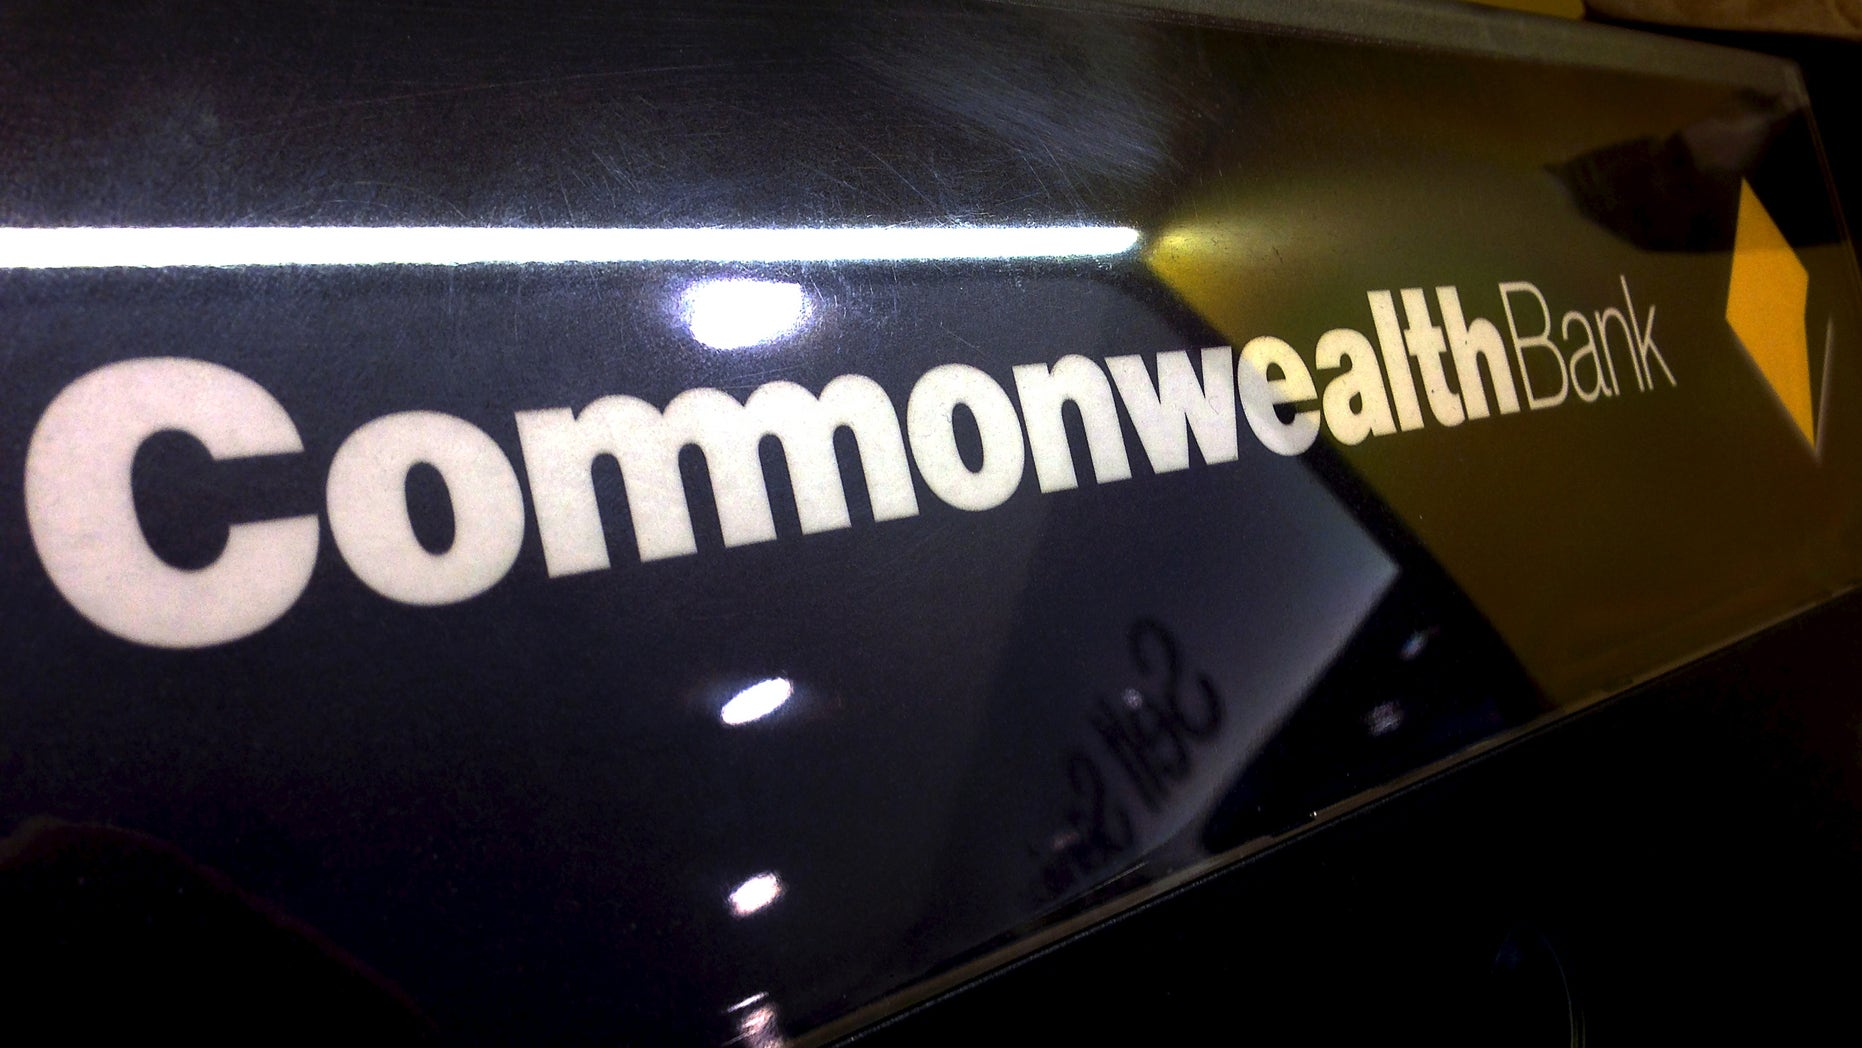 A Commonwealth Bank of Australia logo adorns the wall of a branch located in Sydney, Australia, November 5, 2015. The Commonwealth Bank of Australia (CBA), the country's No.2 lender by assets, on Thursday posted first quarter unaudited cash earnings of A$2.4 billion ($1.7 billion) while bad debt charges fell. Australia's four major banks - CBA, National Australia Bank, ANZ Banking Corp and Westpac - posted their sixth straight year of record profits but are preparing for their slowest earnings growth since the global financial crisis as the economy cools and stricter capital regulations bite.   REUTERS/David Gray - RTX1UT17